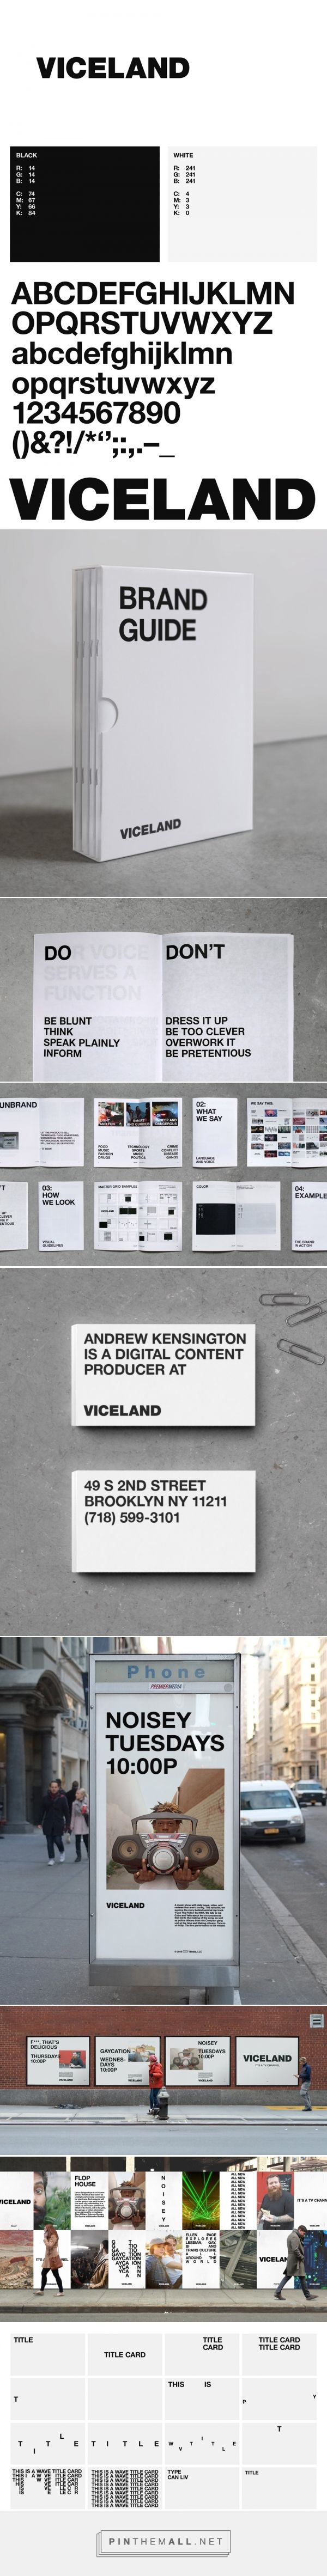 Brand New: New Logo, Identity, and On-Air Package for Viceland by Gretel... - a grouped images picture - Pin Them All